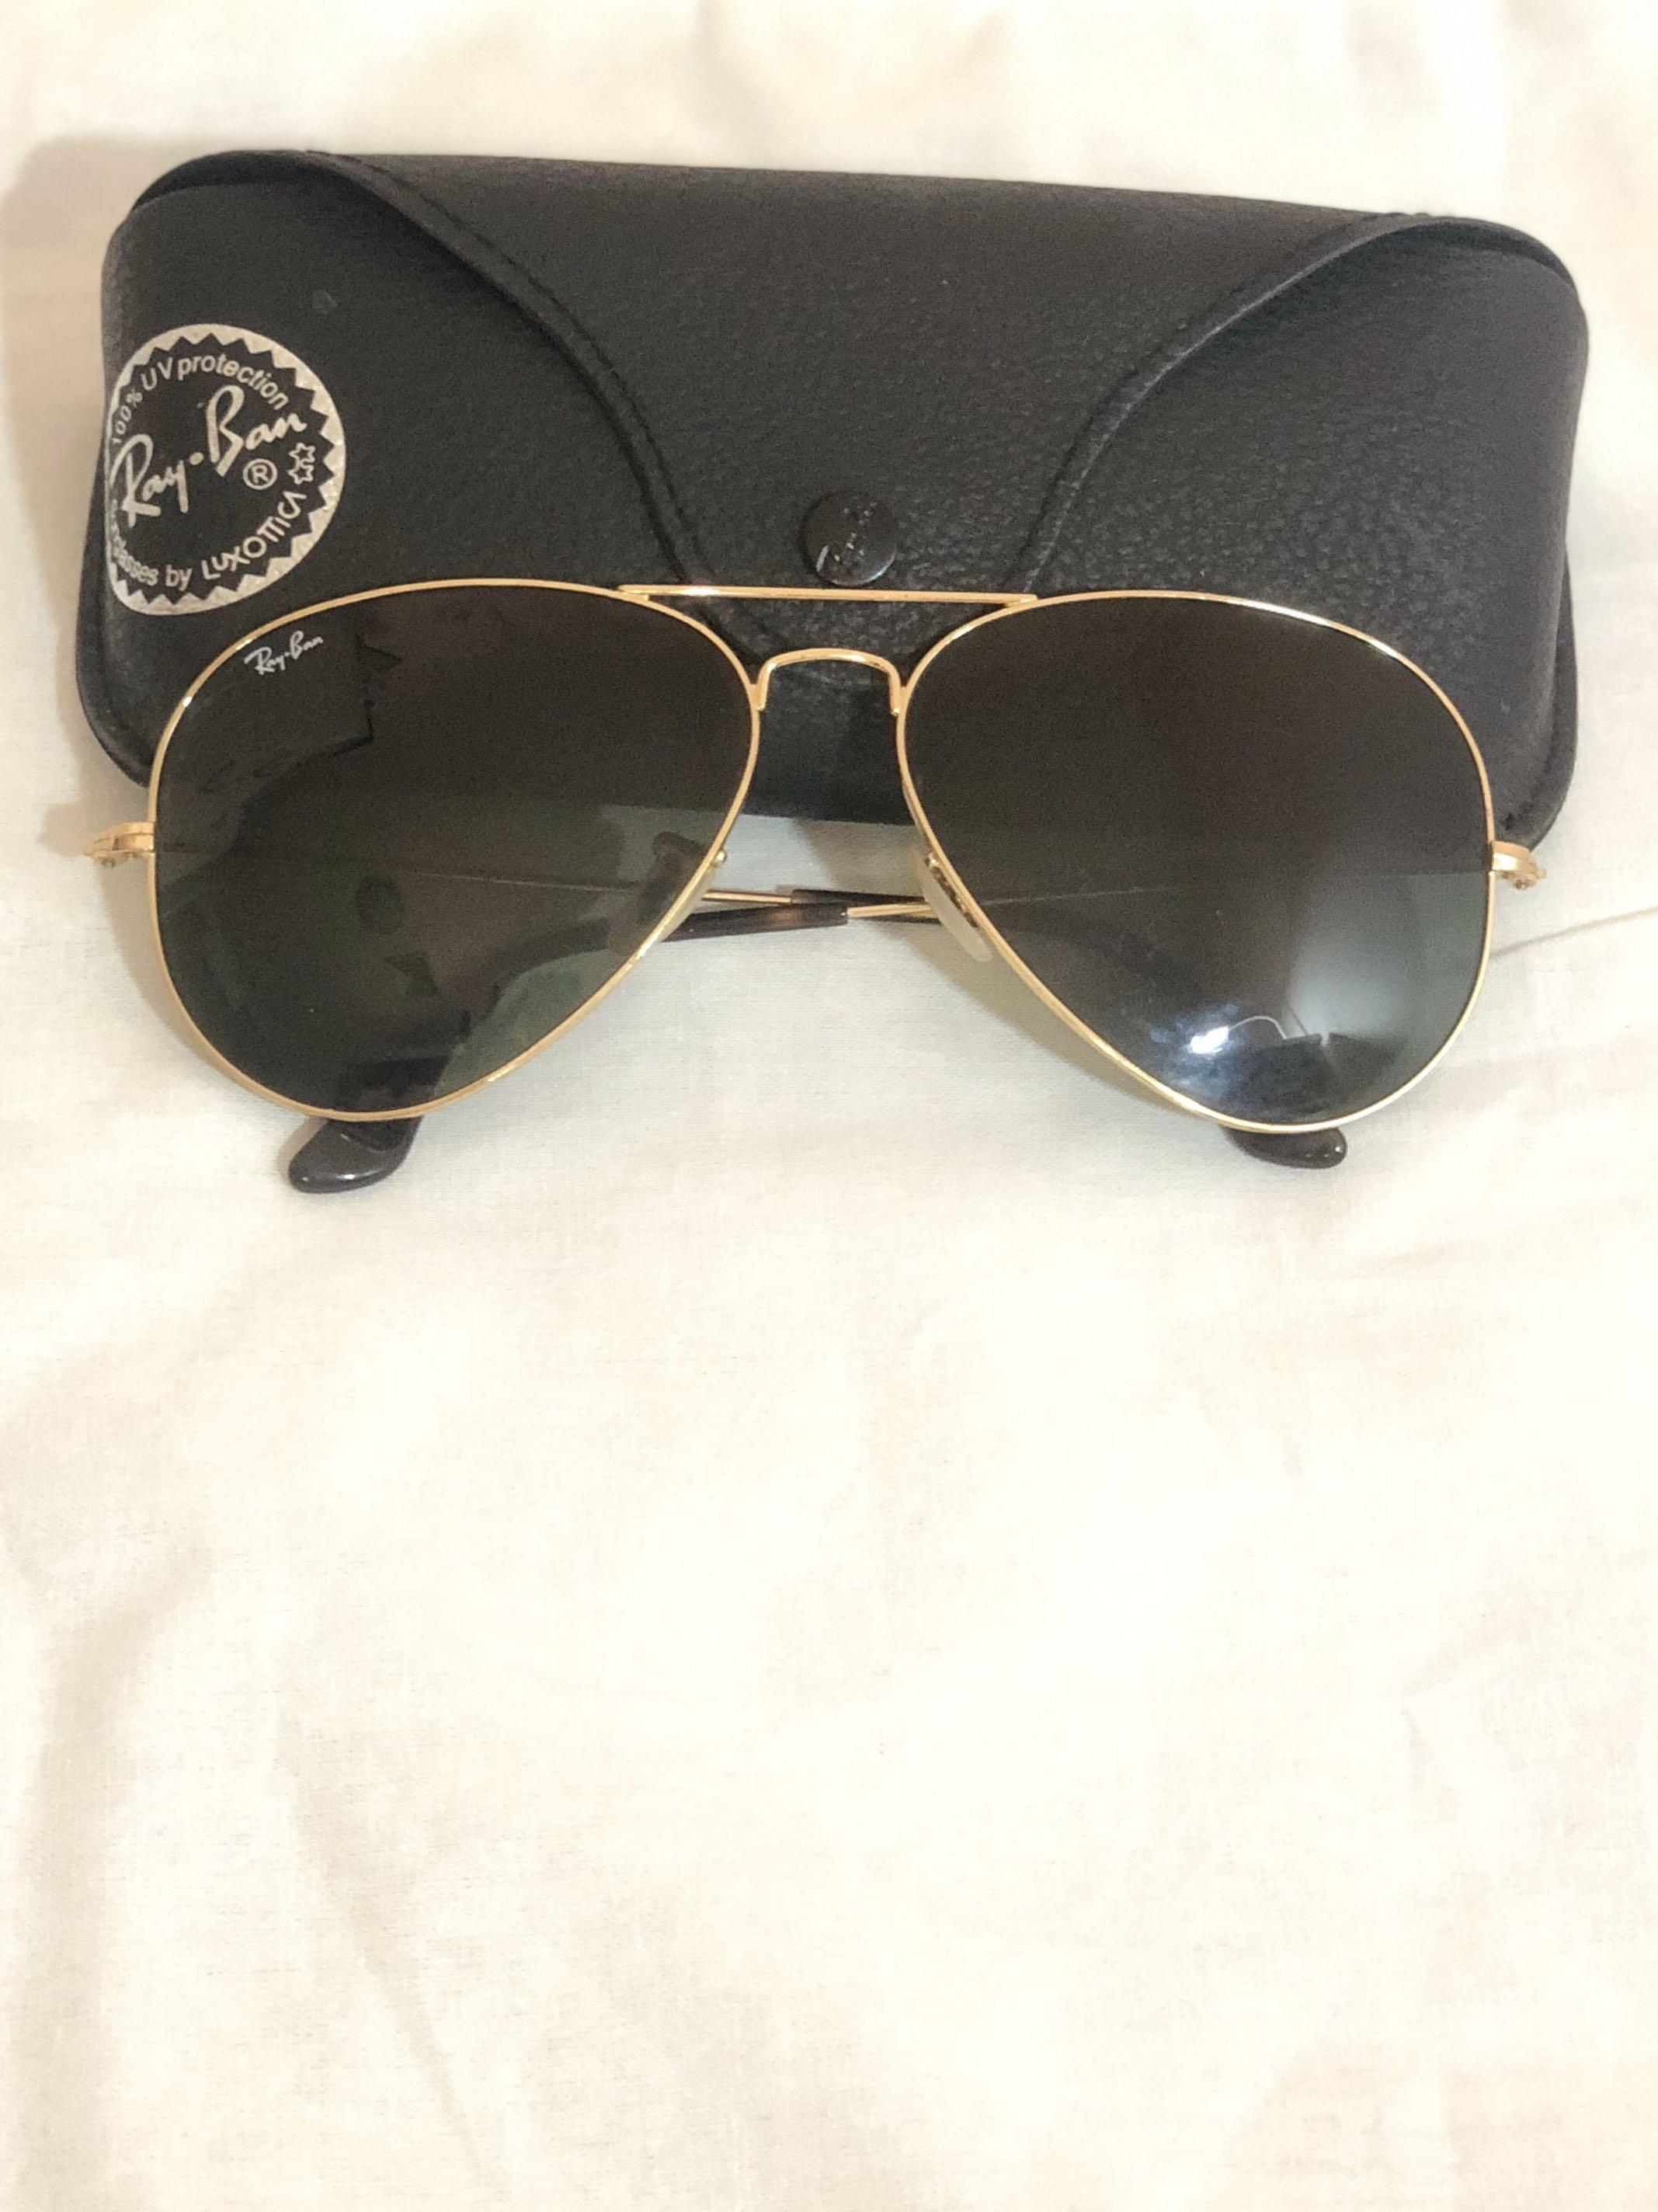 Authentic Ray Bans - unisex - Aviator Large Metal RB3025